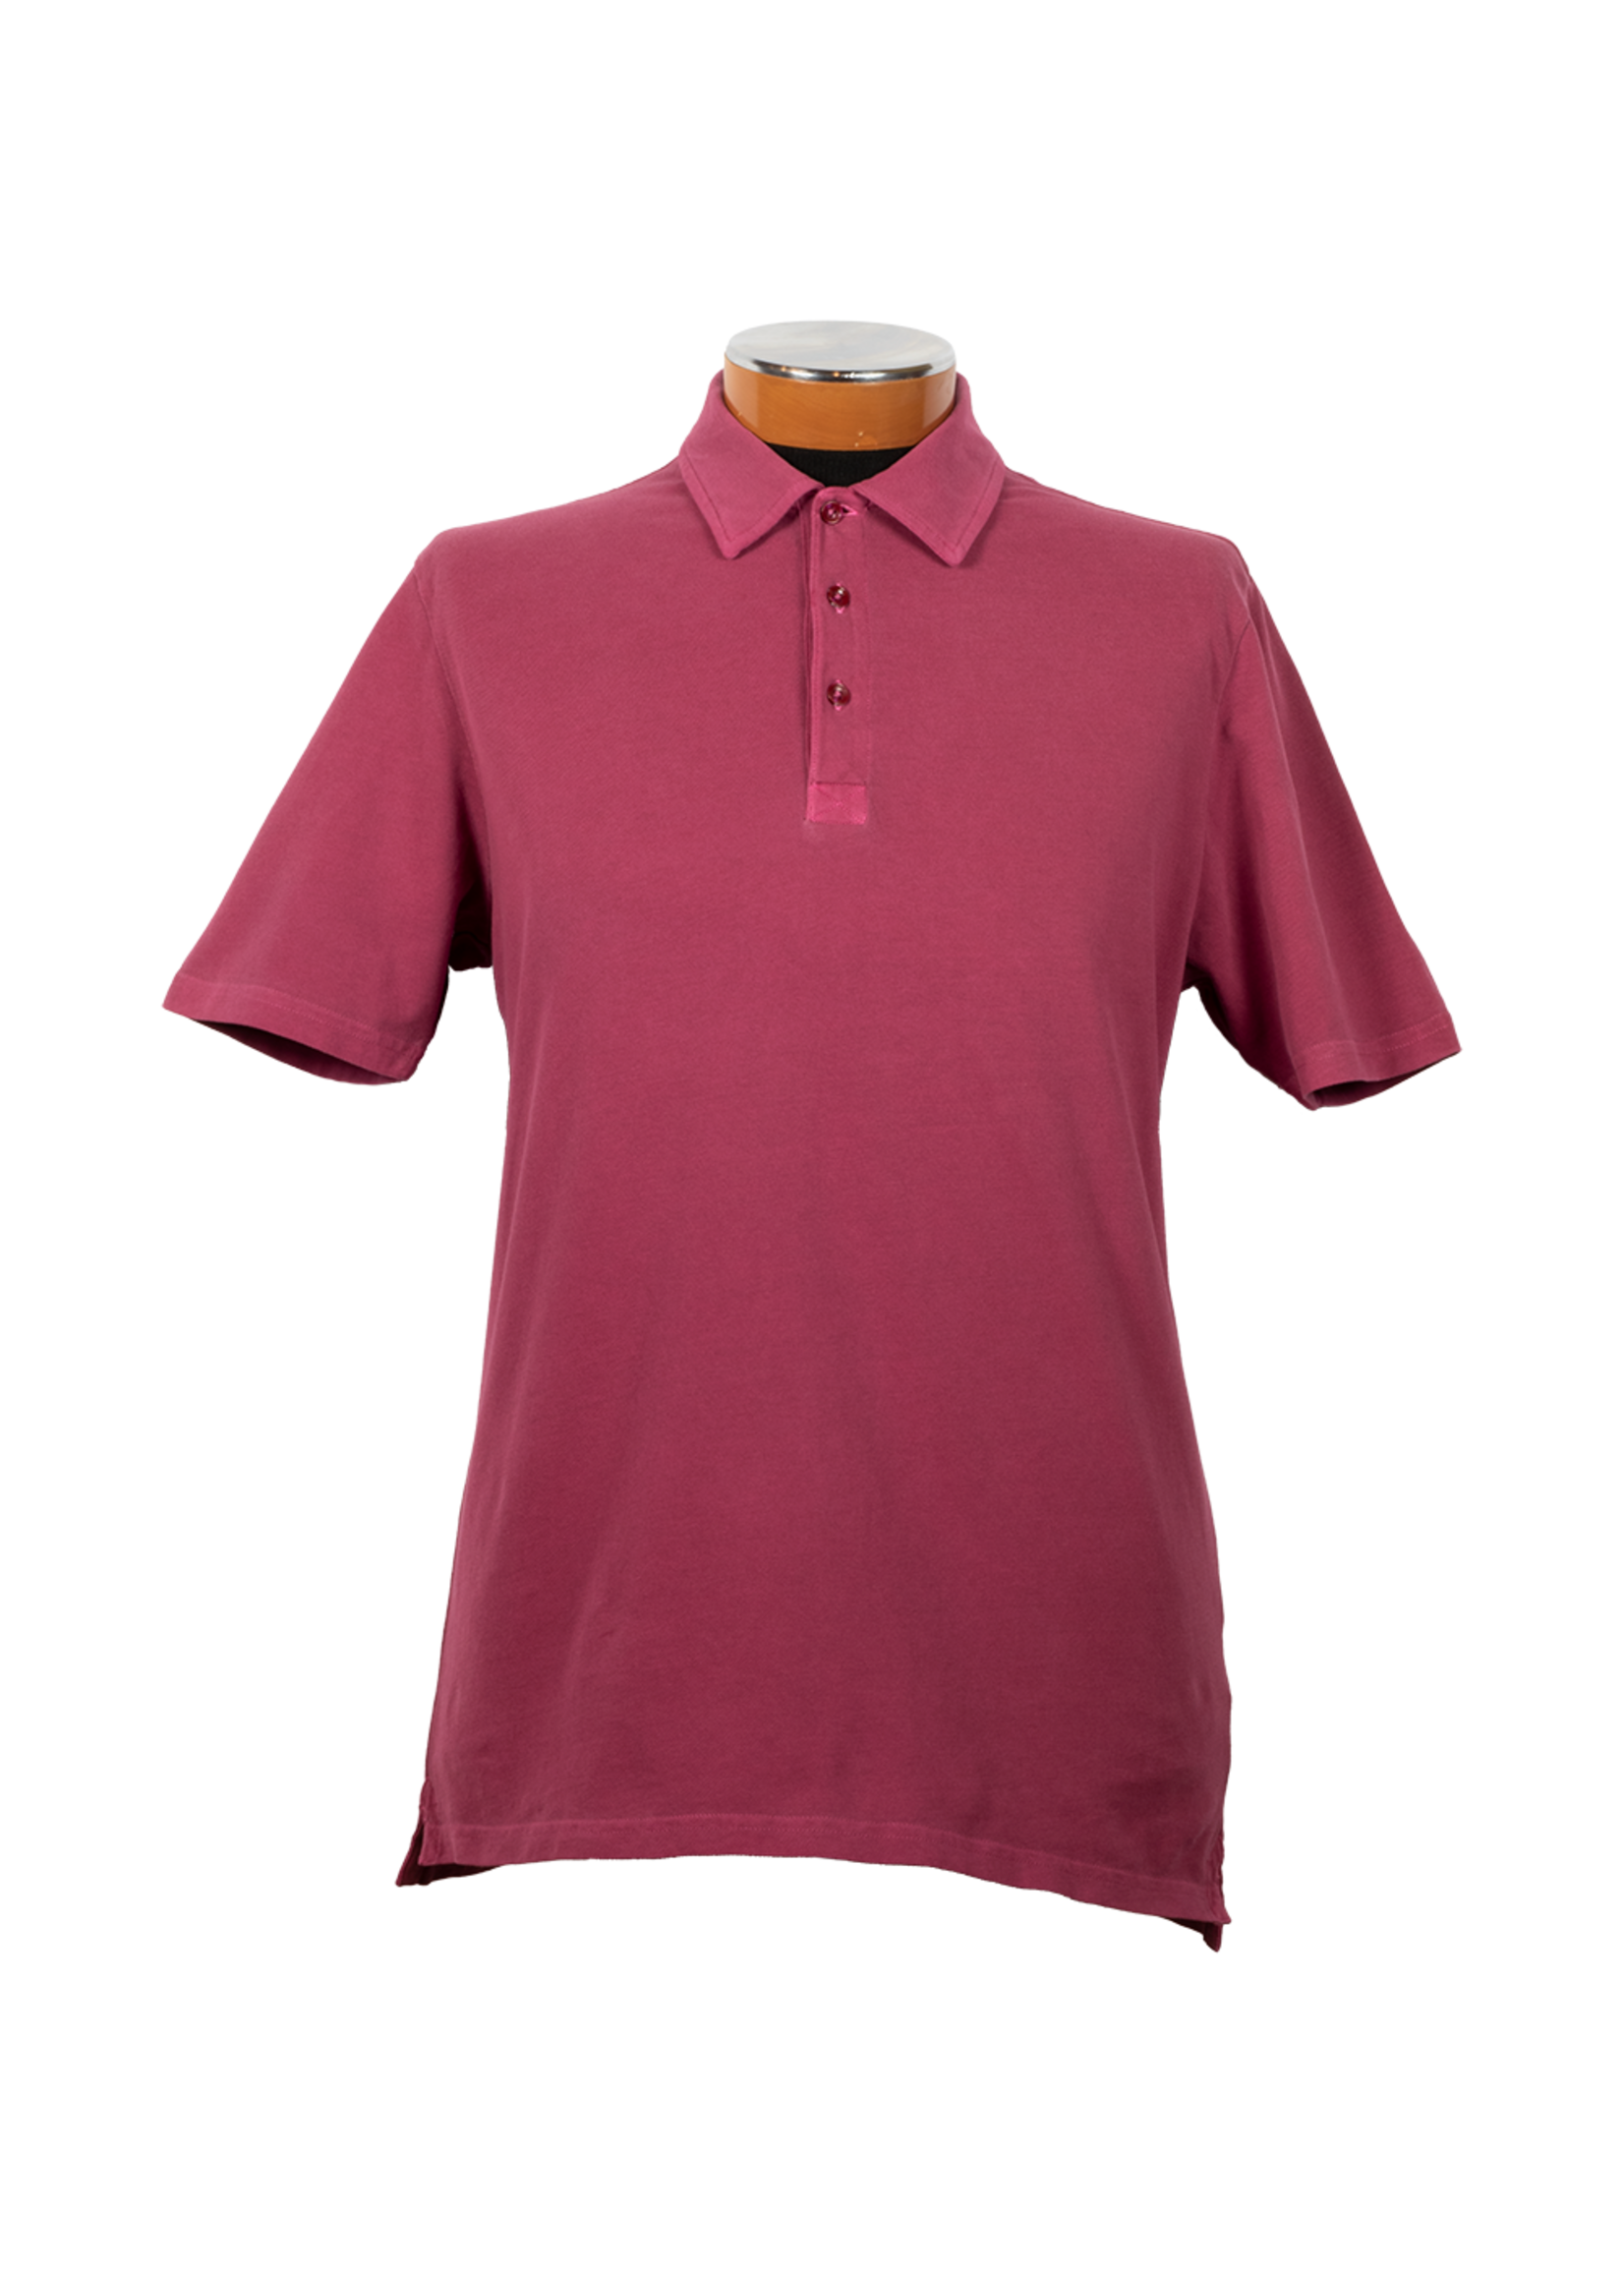 Alan Paine Weymouth Cotton Pique Polo by Alan Paine